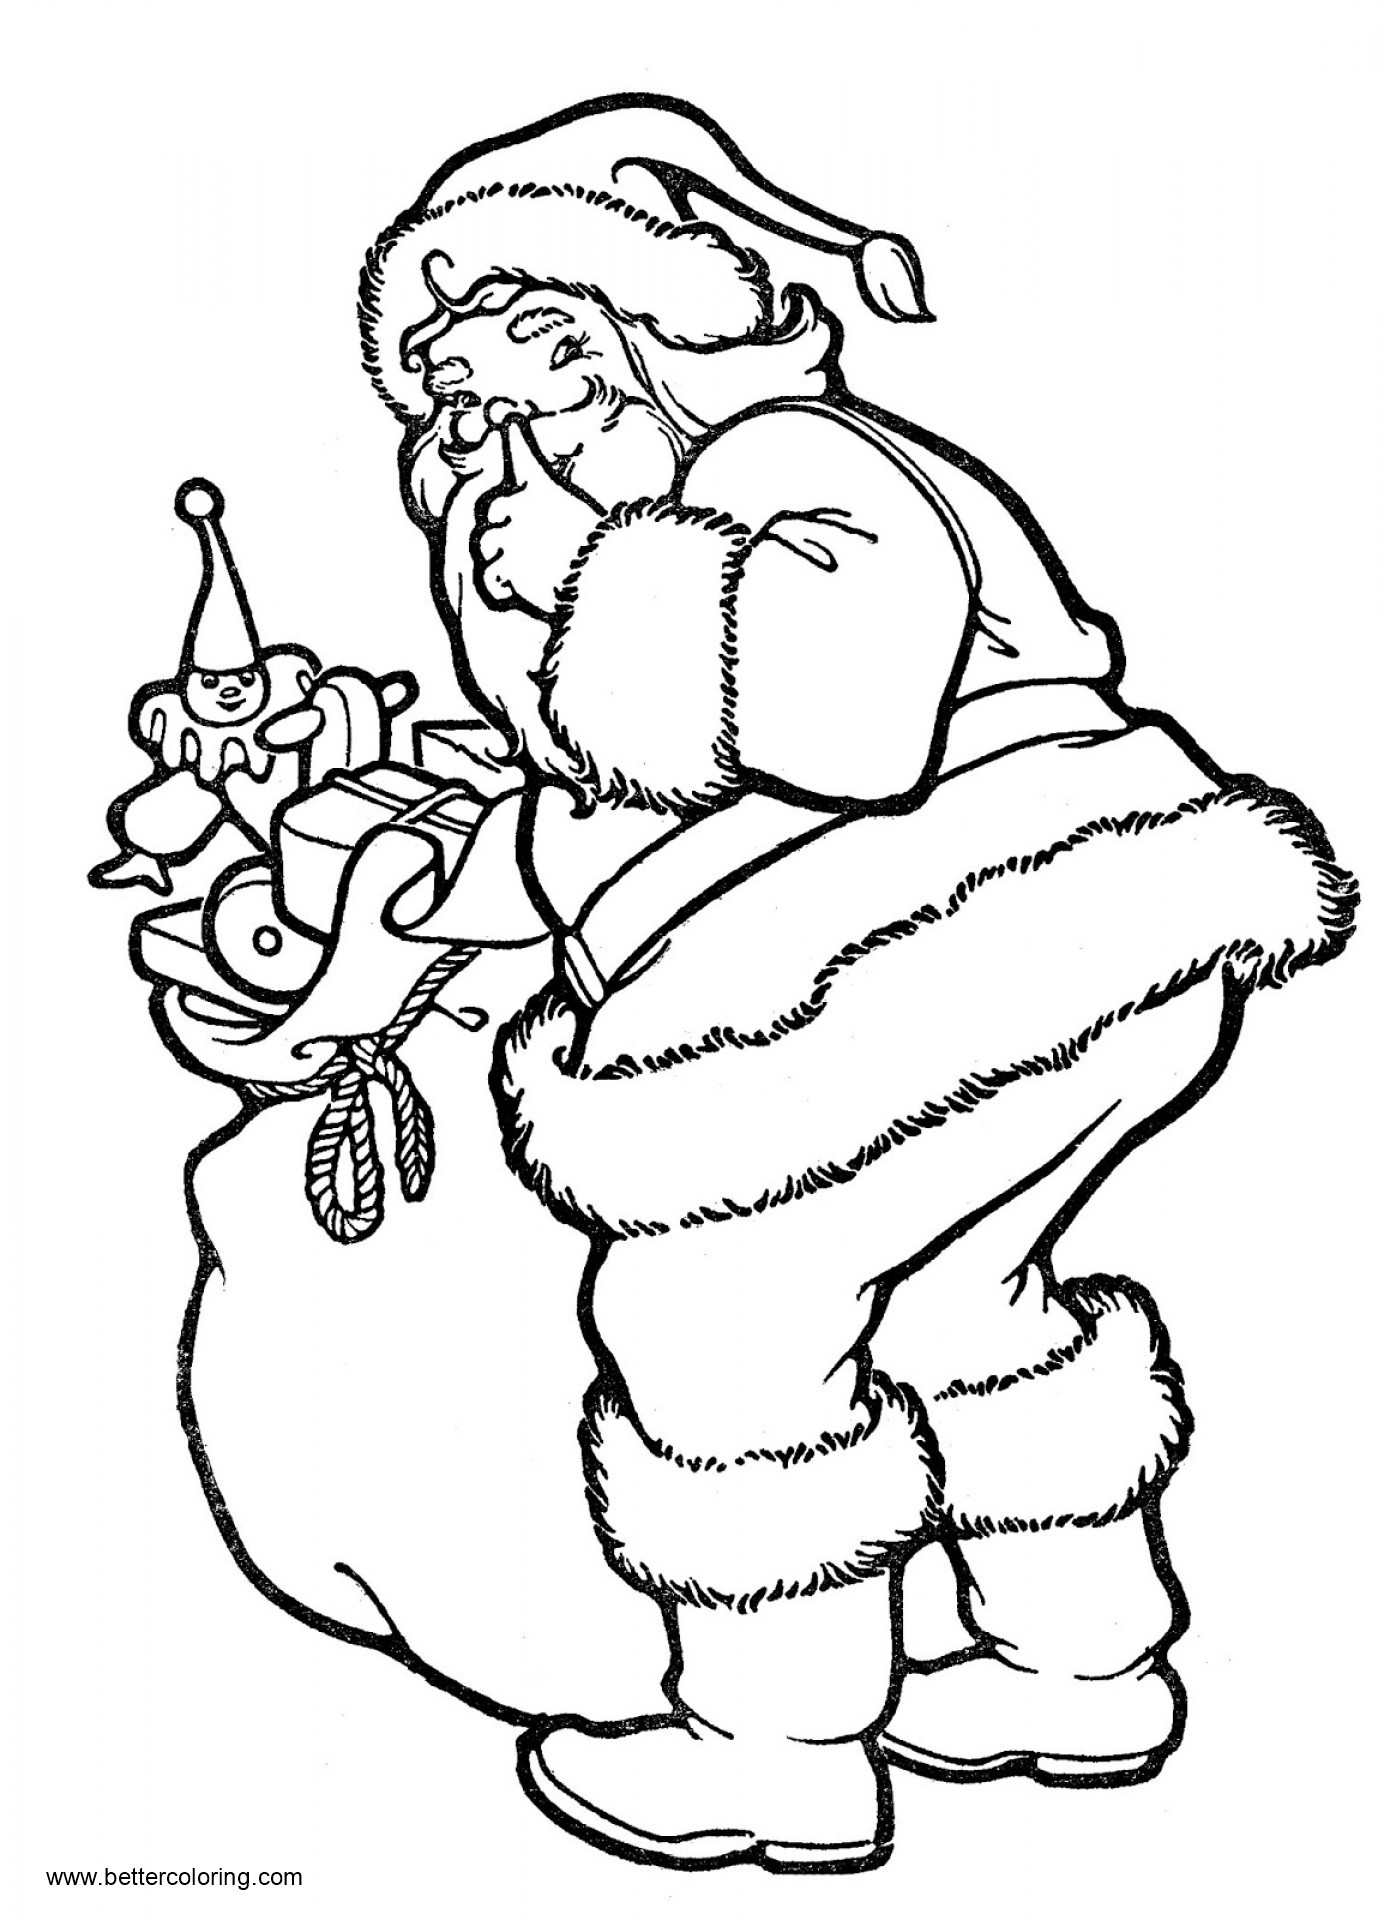 Christmas Coloring Pages Cute Santa With Toys - Free ...